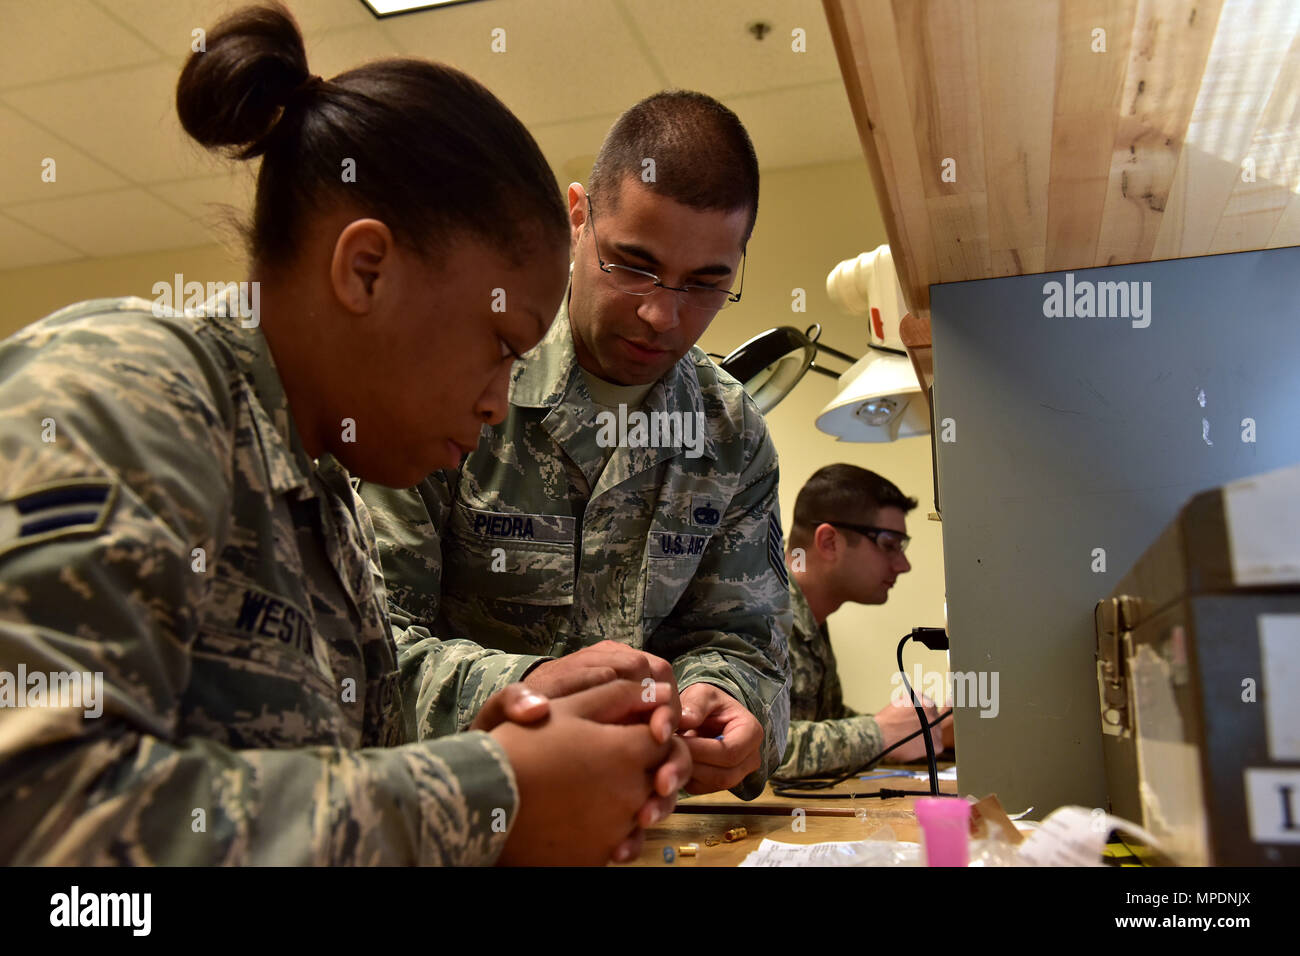 U.S. Air Force Tech. Sgt. Jose Piedra, center, 373rd Training Squadron Detachment 4 production supervisor and instructor, demonstrates splicing and building a 1553B databus cable to Airman 1st Class Shania Westin, left, 373rd TRS student, for the C-130J Feb. 23, 2017 at the Center of Excellence on Little Rock Air Force Base, Ark.  The Airman must understand how the cable functions as it transfers information throughout the aircraft and be able to build new ones effectively. (U.S. Air Force photo by Staff Sgt. Jeremy McGuffin) - Stock Image